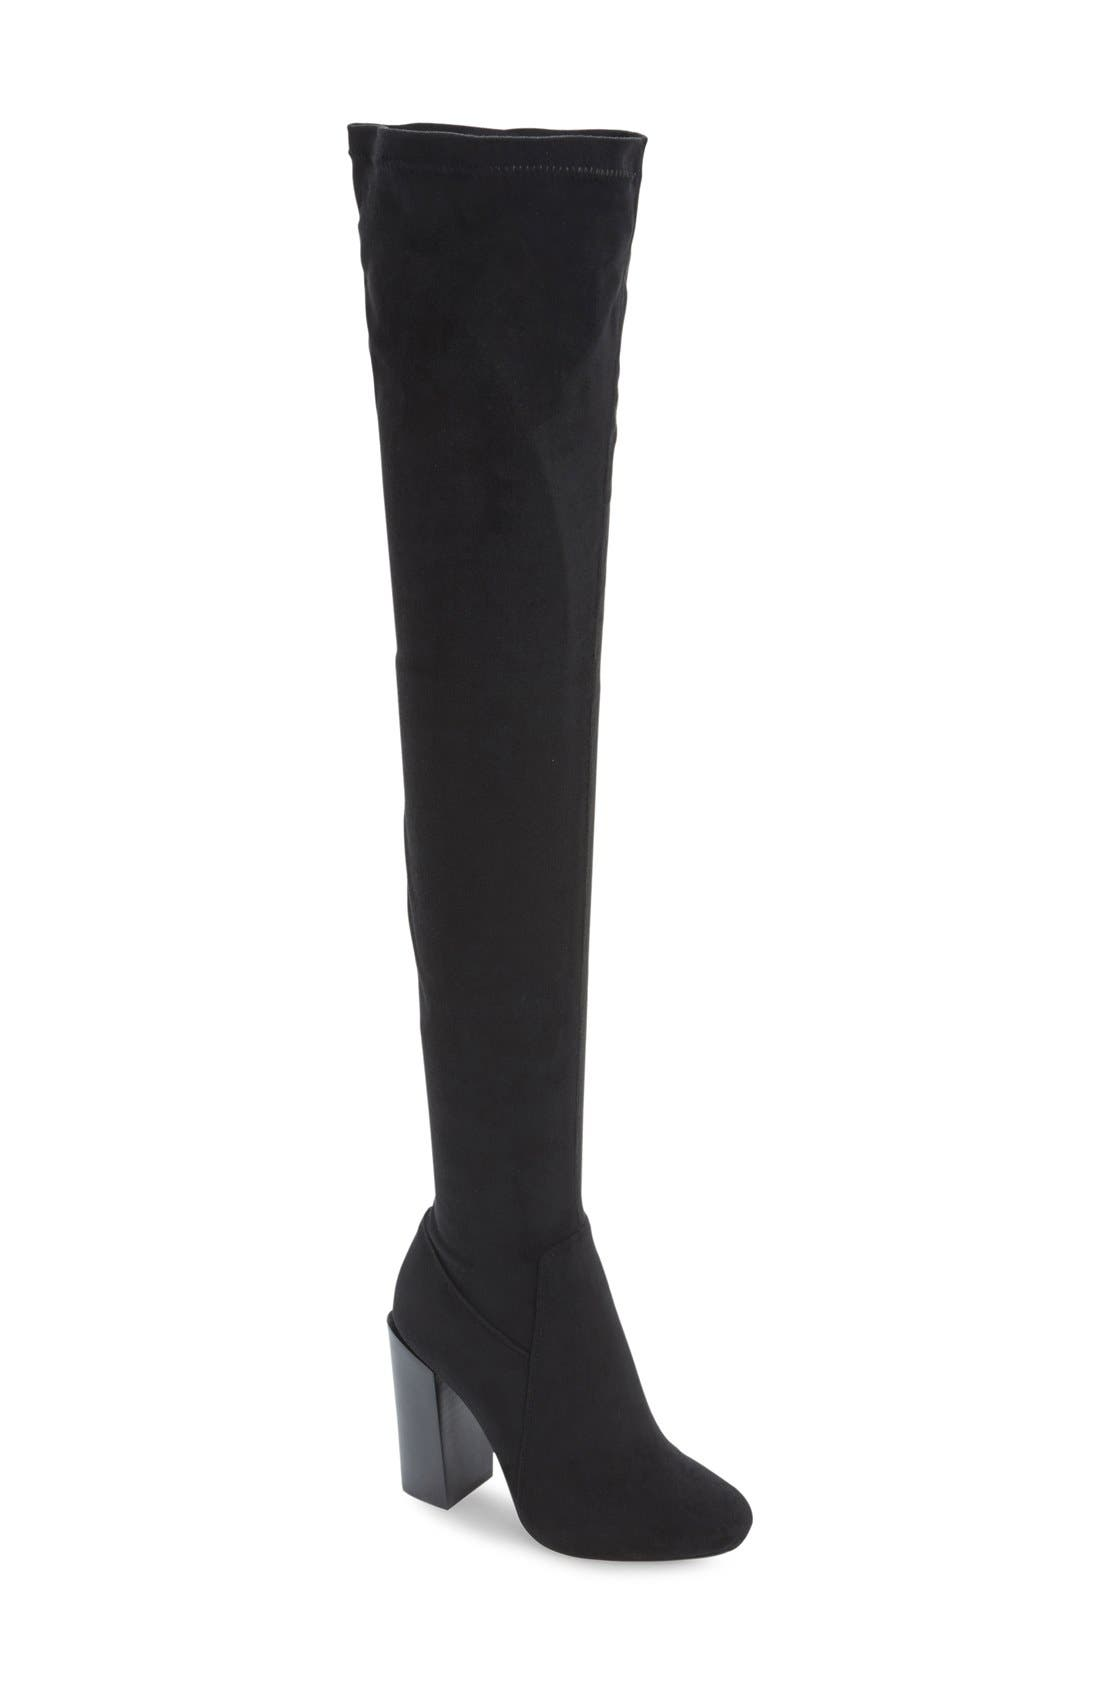 Alternate Image 1 Selected - Jeffrey Campbell 'Perouze' Over the Knee Boot (Women)